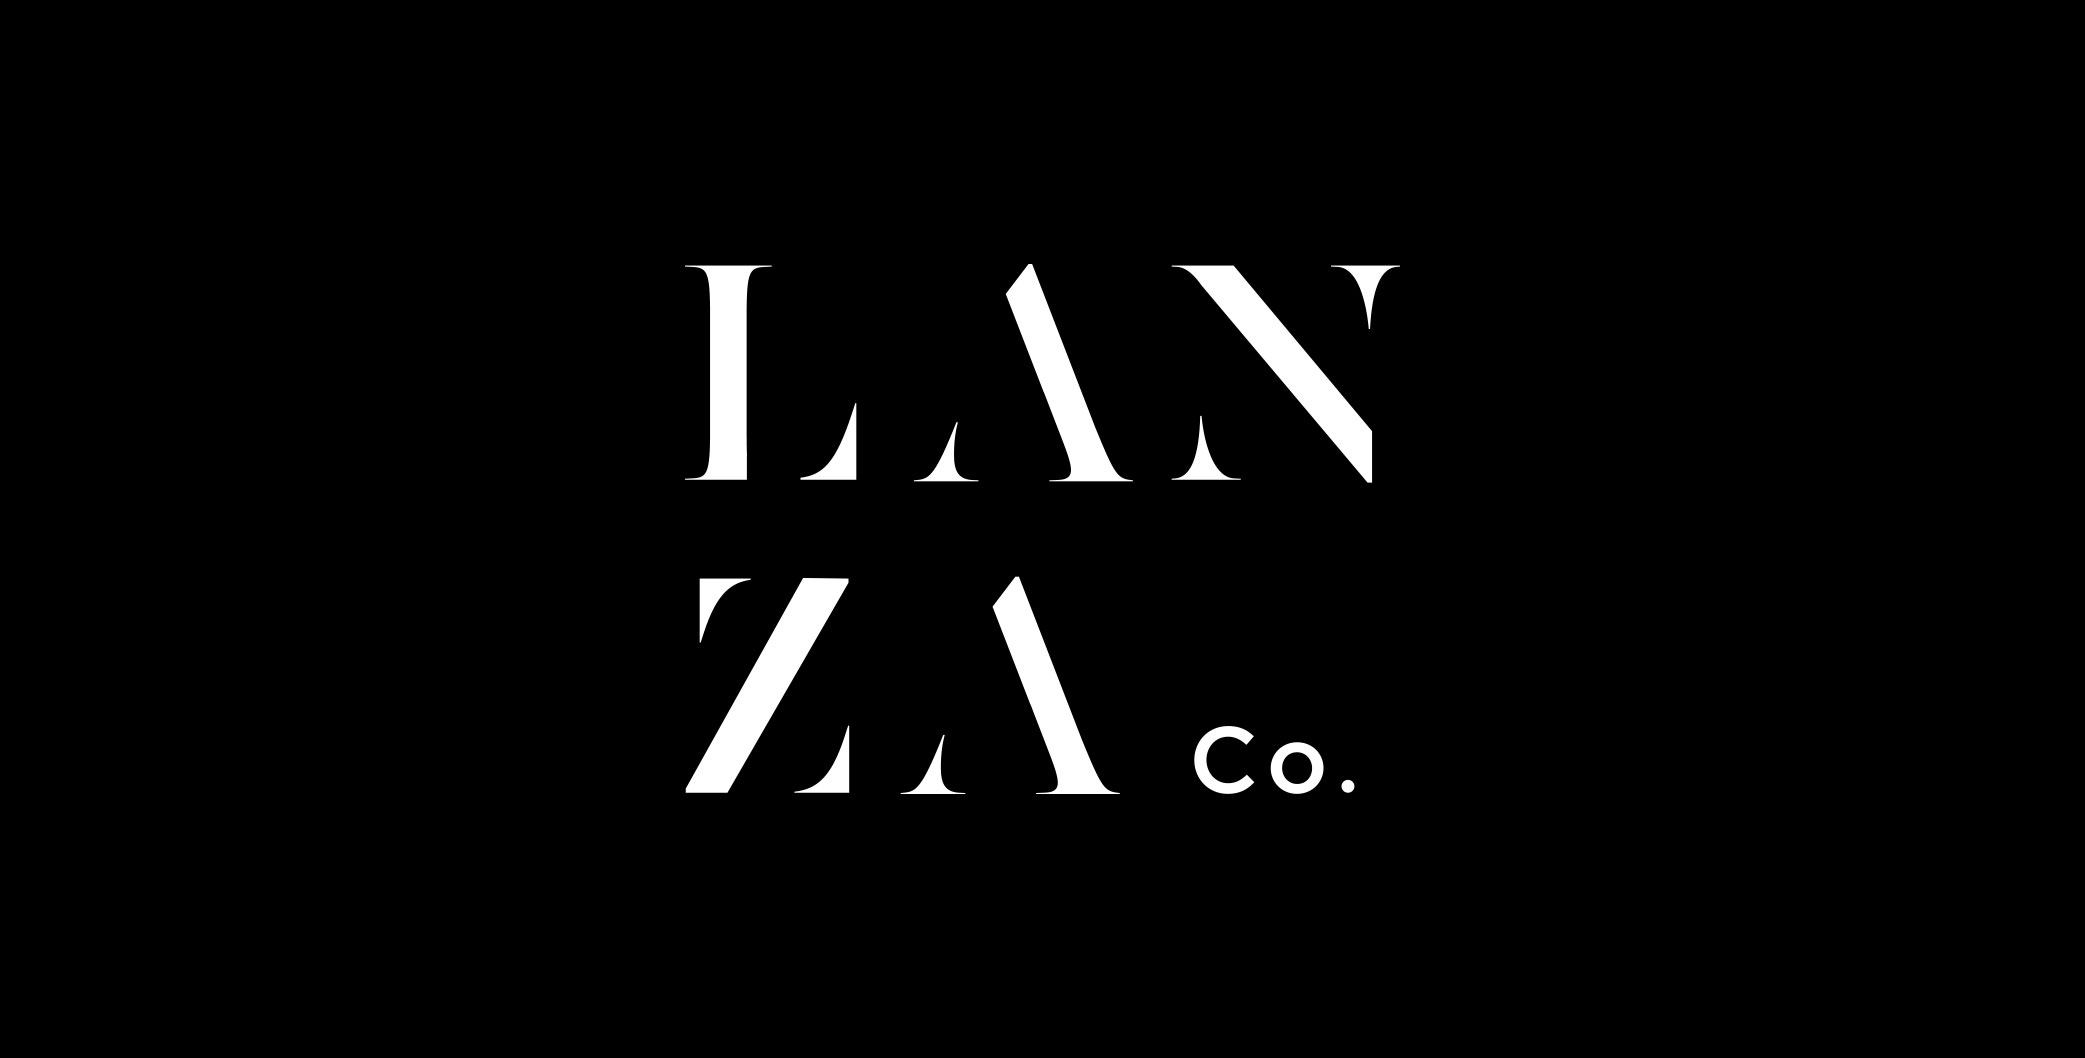 WSC-20-03-Lanza-and-co-brand-identity.pn